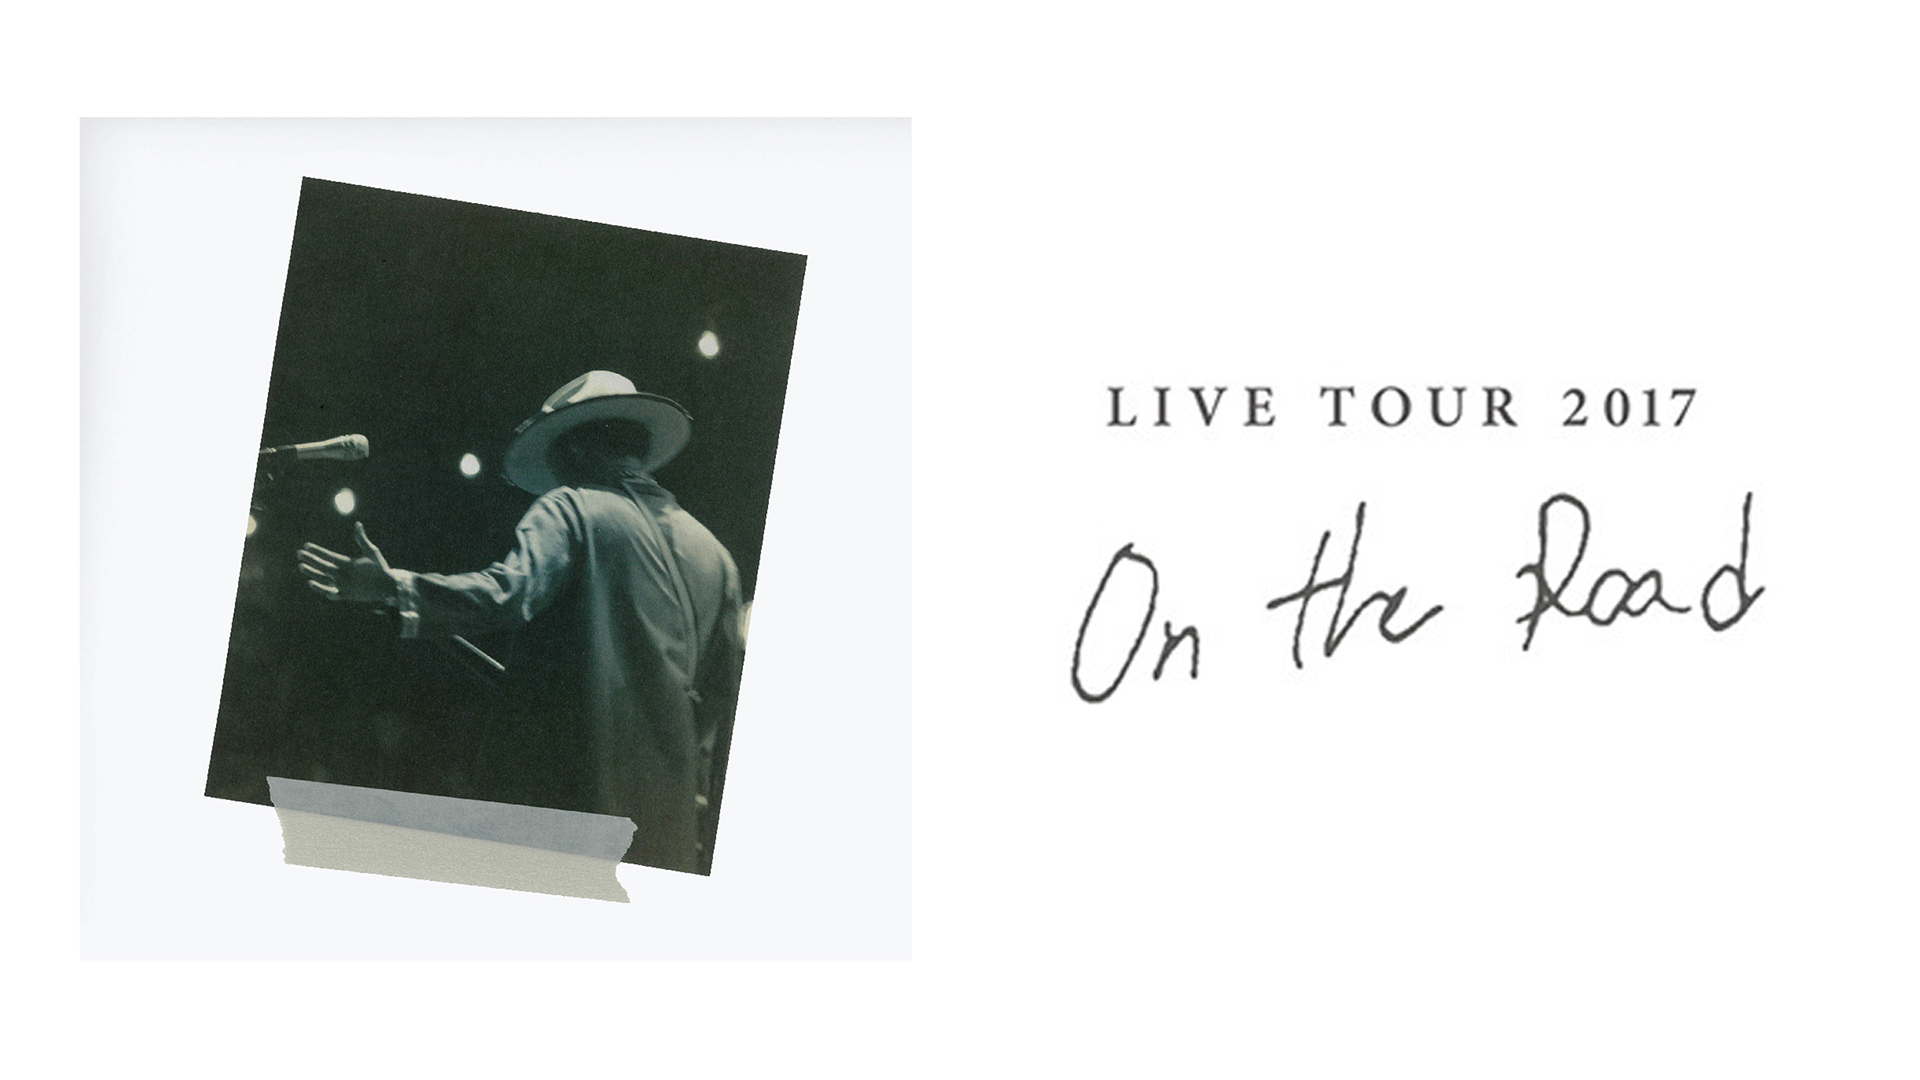 LIVE TOUR 2017 ON THE ROAD